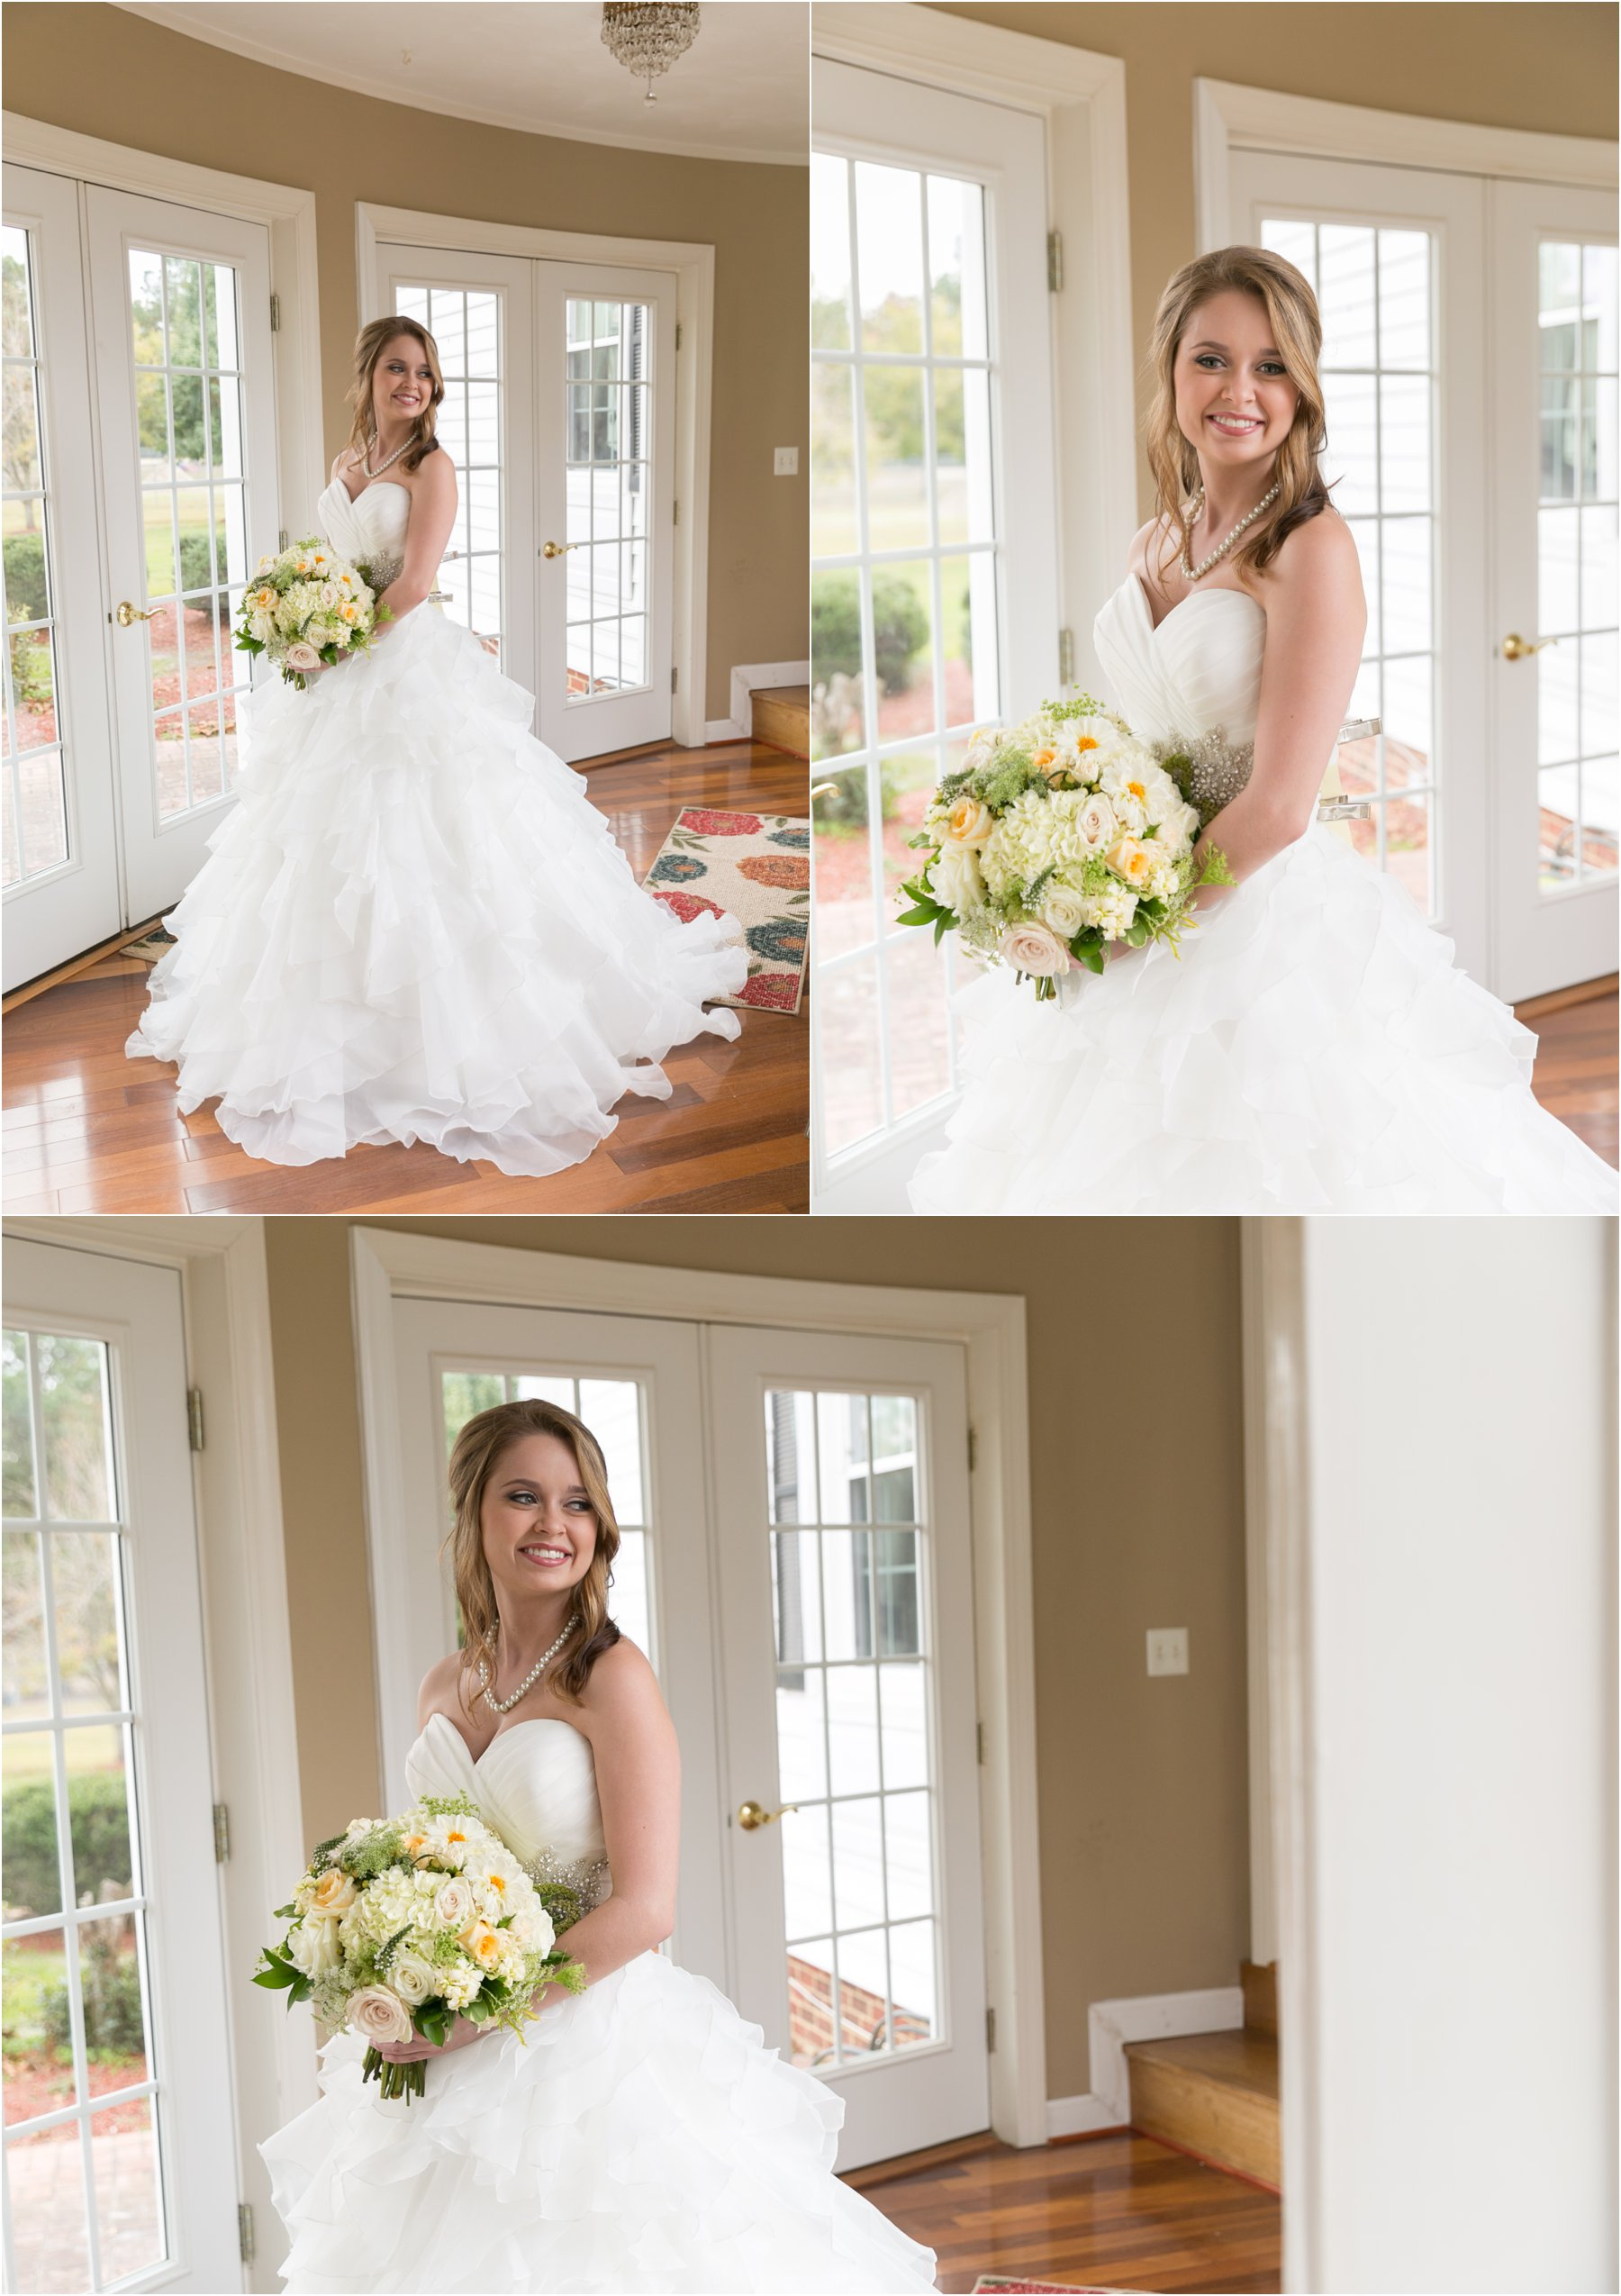 Holly_Ridge_Manor_Wedding_Photography_Jessica_Ryan_Photography_virginia_virginia_beach_0248